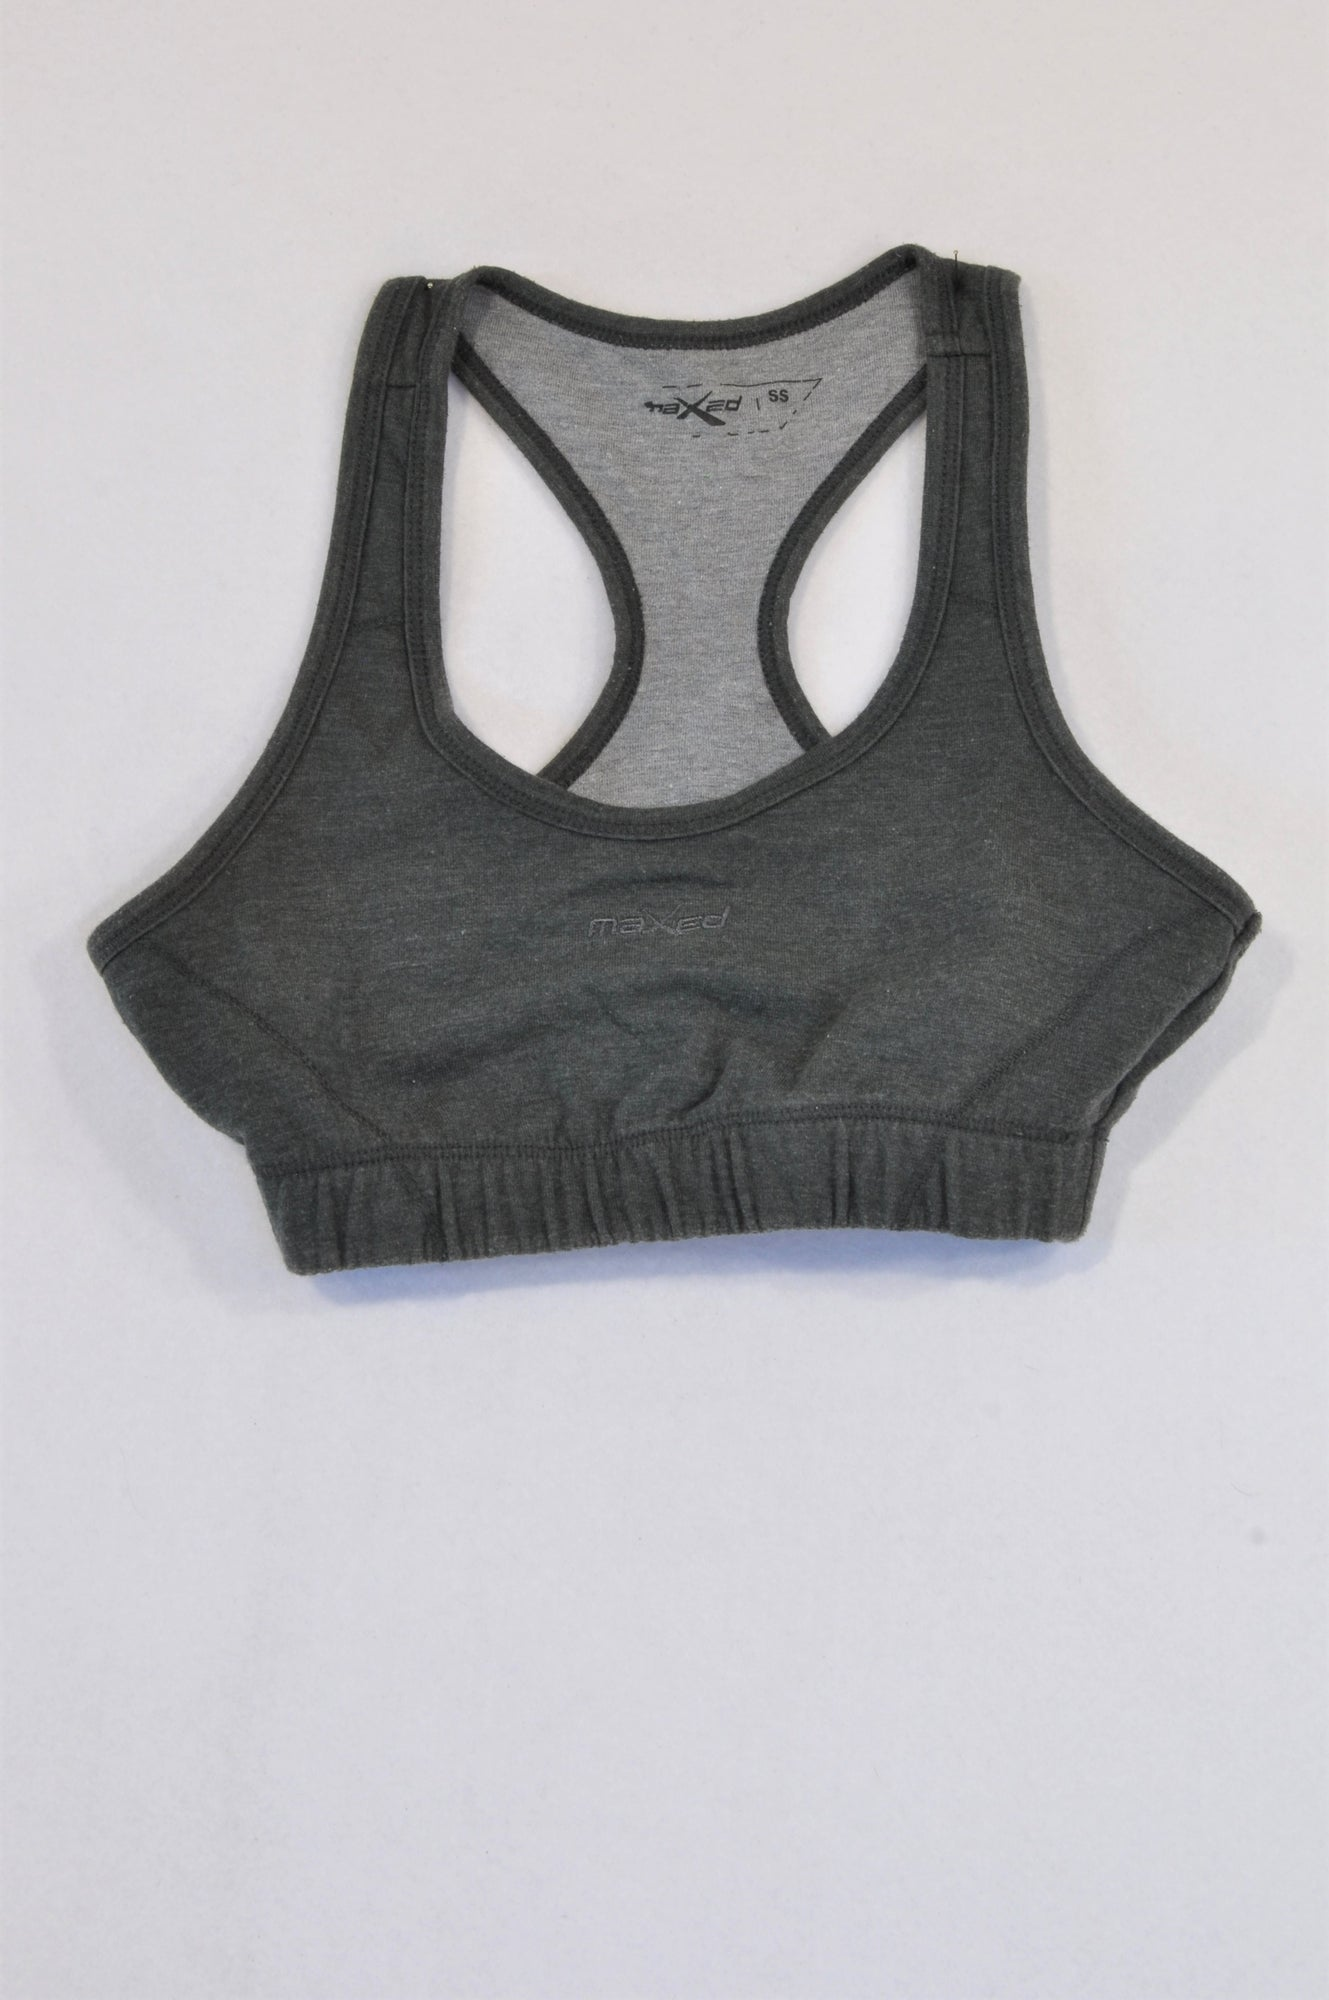 Mr. Price Basic Dark Grey Maxed Crop Sports Top Girls 6-8 years